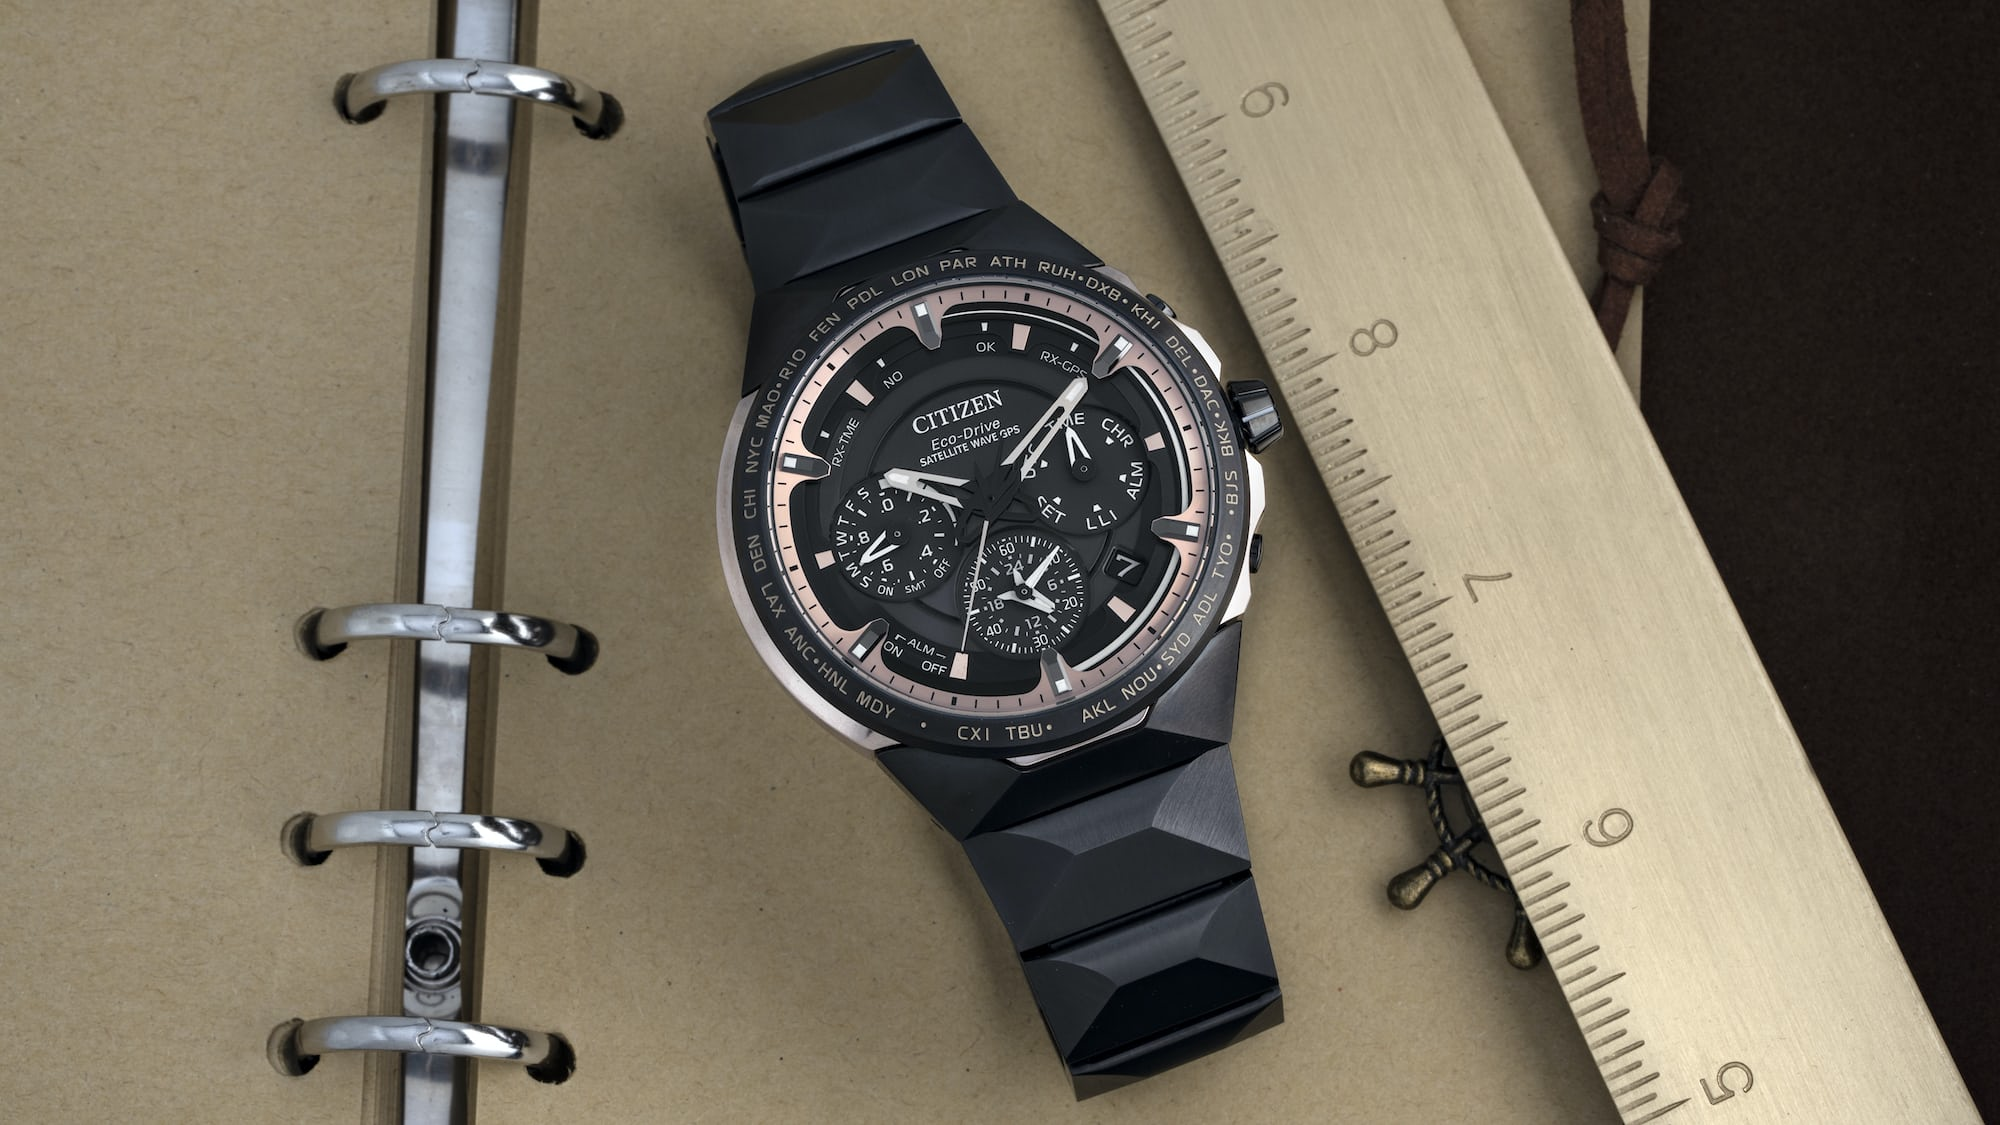 Hands-On: The Citizen Satellite Wave GPS F950 Titanium 50th Anniversary Limited Edition